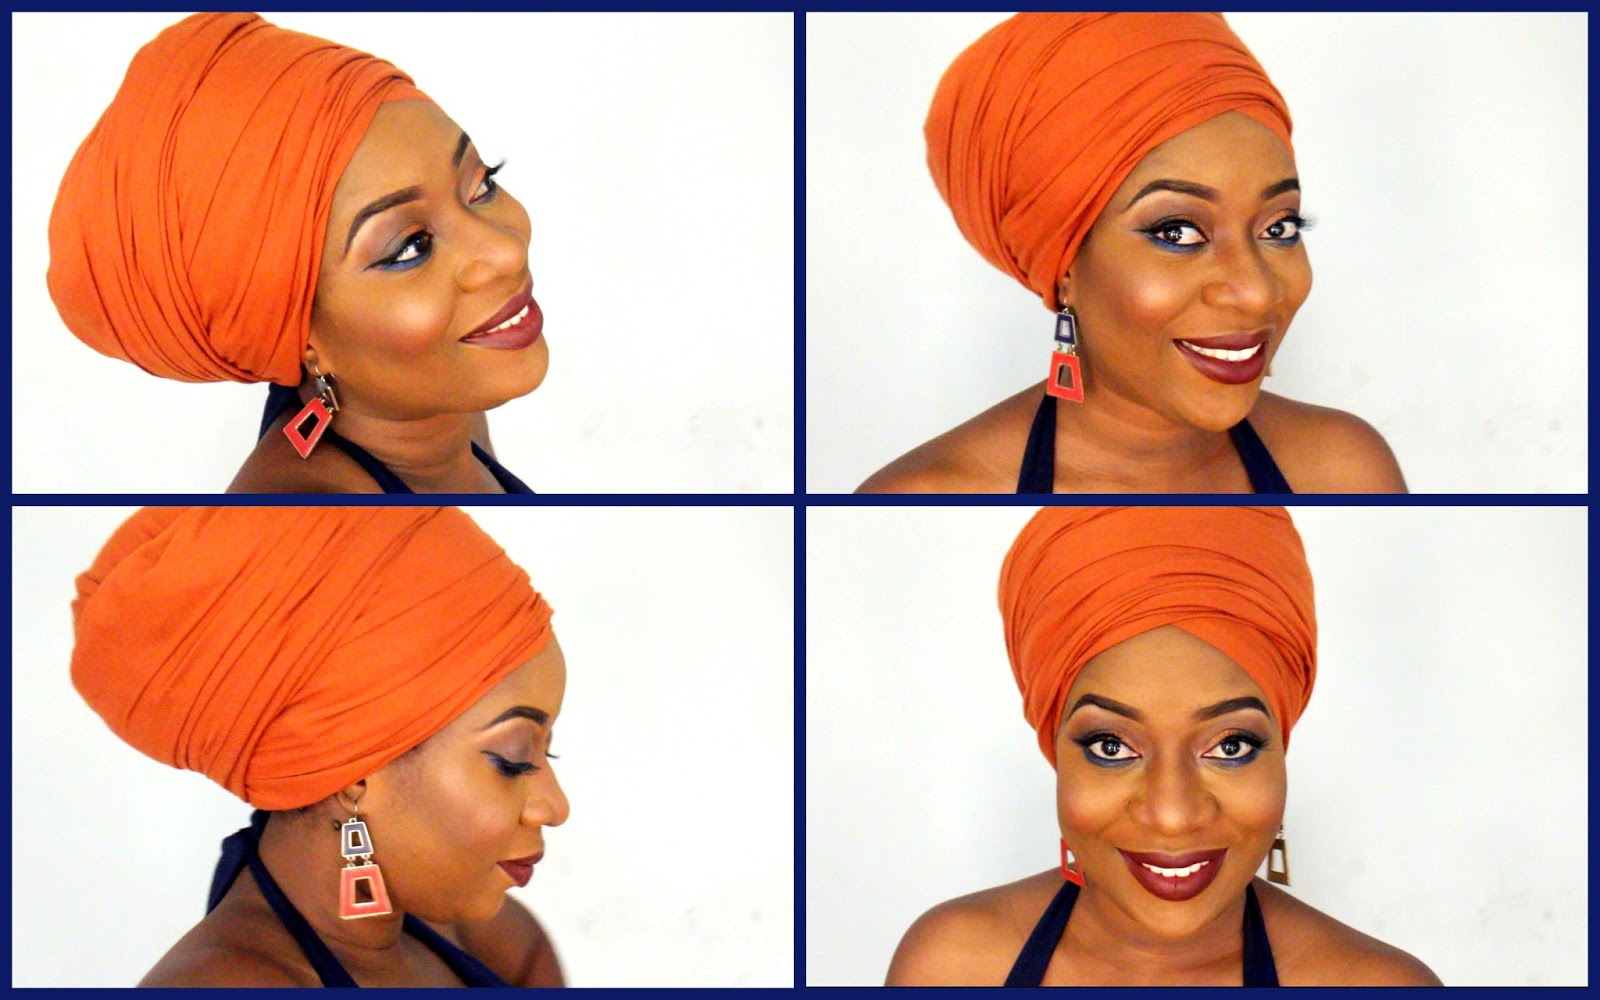 How i tie a turbanhead wrap very easy sisiyemmie nigerian in my recent vlogs ive been tying turbans because of mostly bad hair days or for a different look ive gotten so many requests to show how i do it and ccuart Image collections